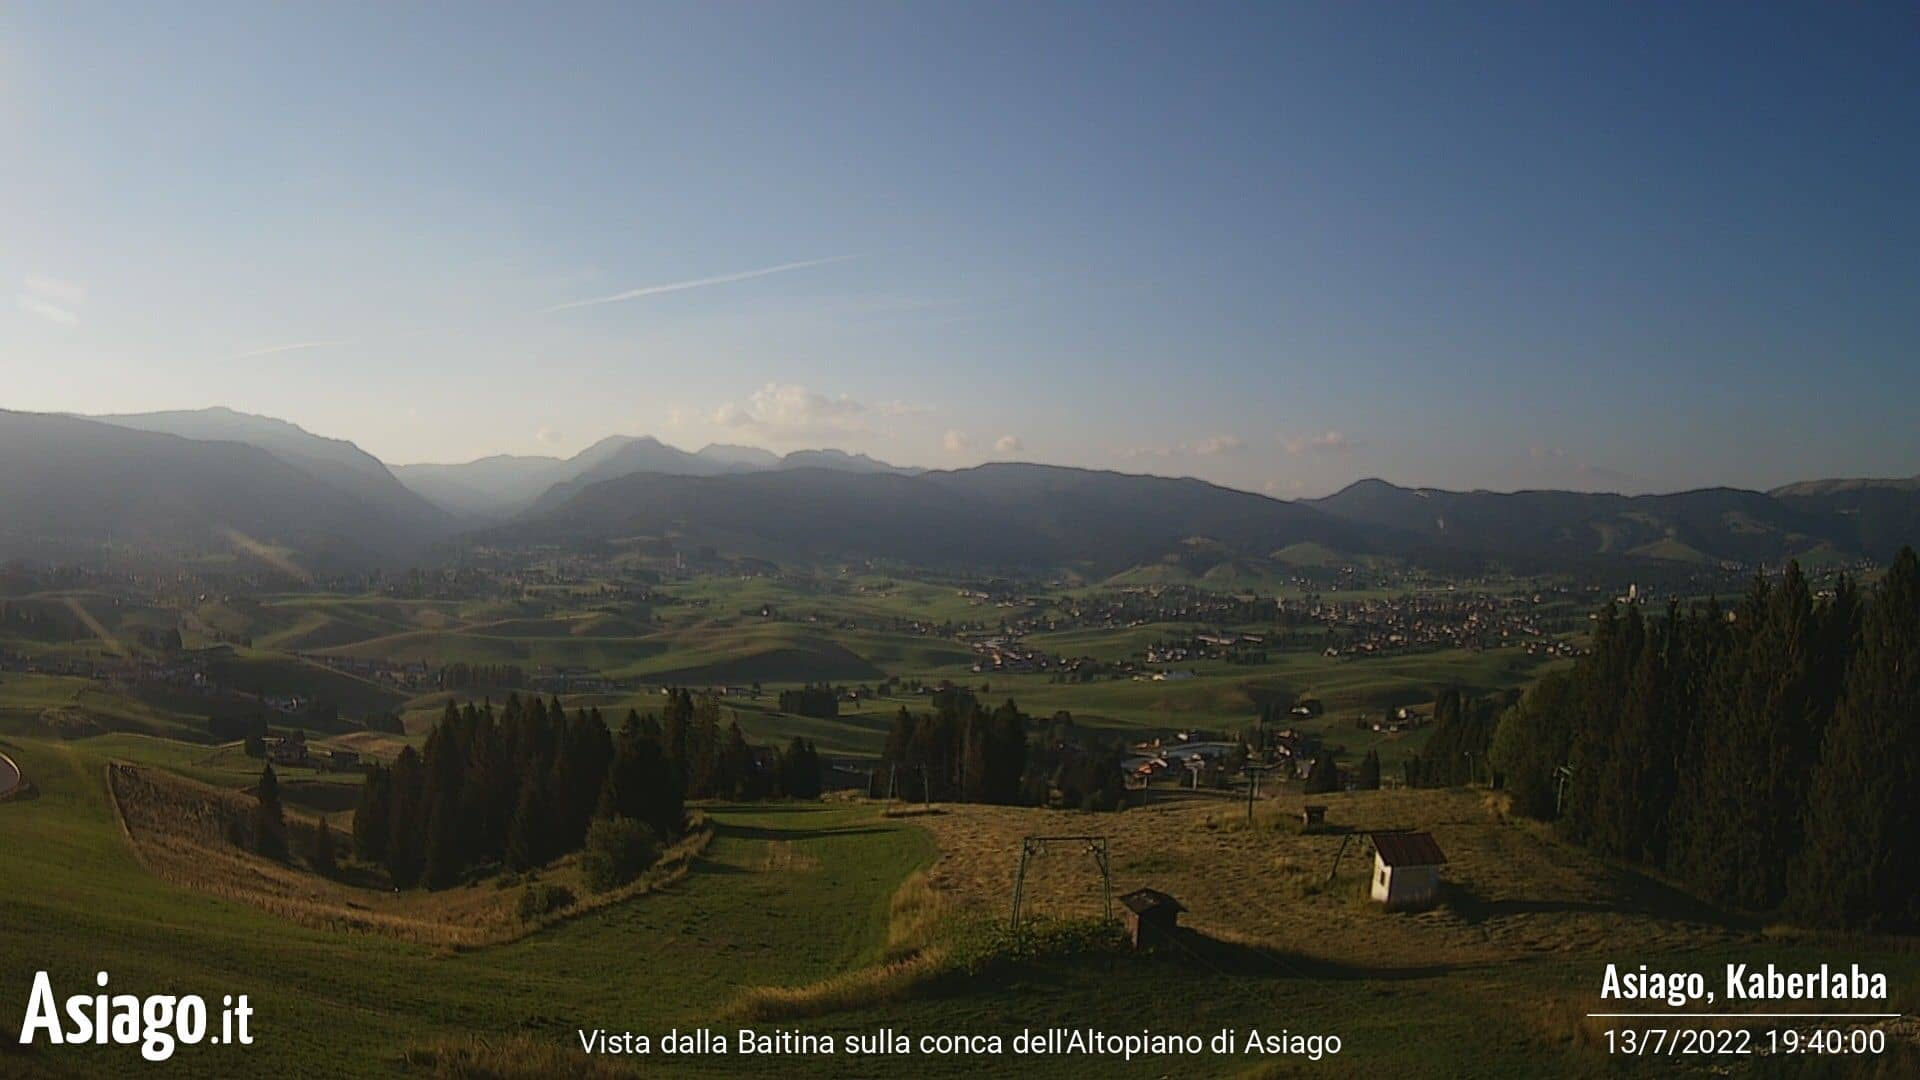 Webcam Live La Baitina Asiago